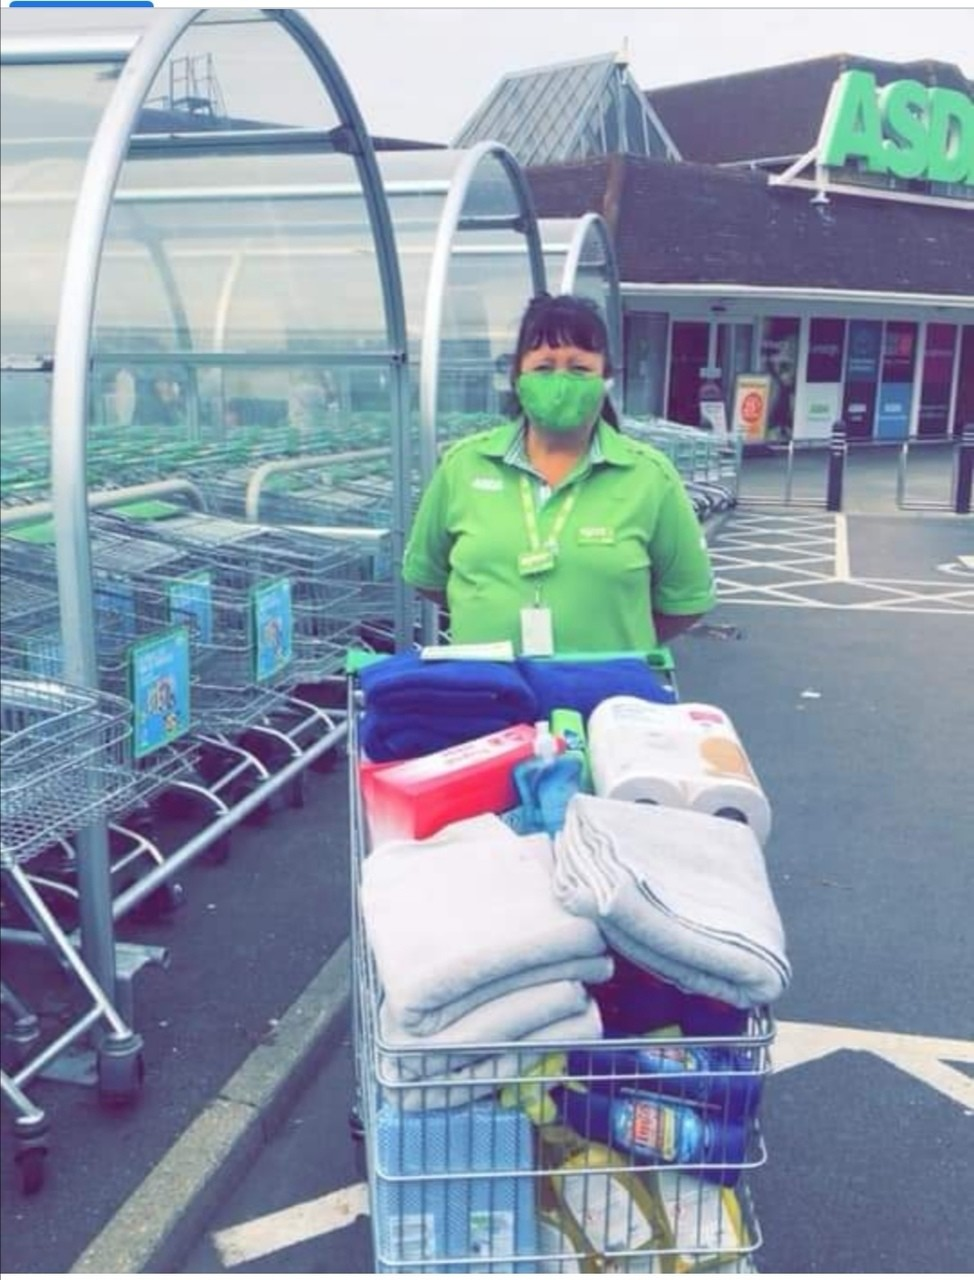 Off The Streets charity donation | Asda Shoebury